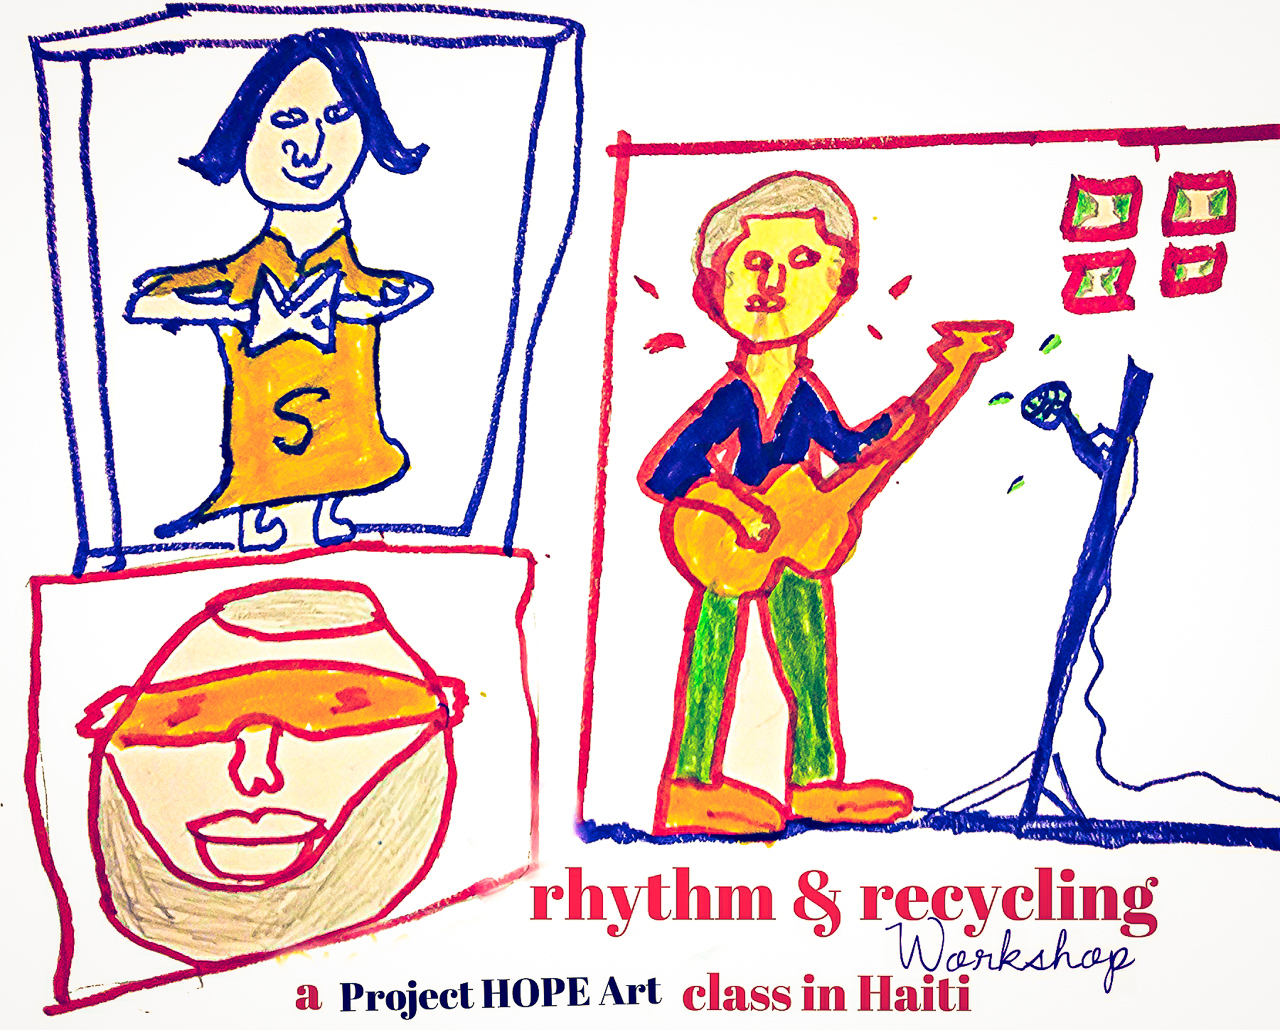 Project HOPE Art RHYTHMRECYCLING